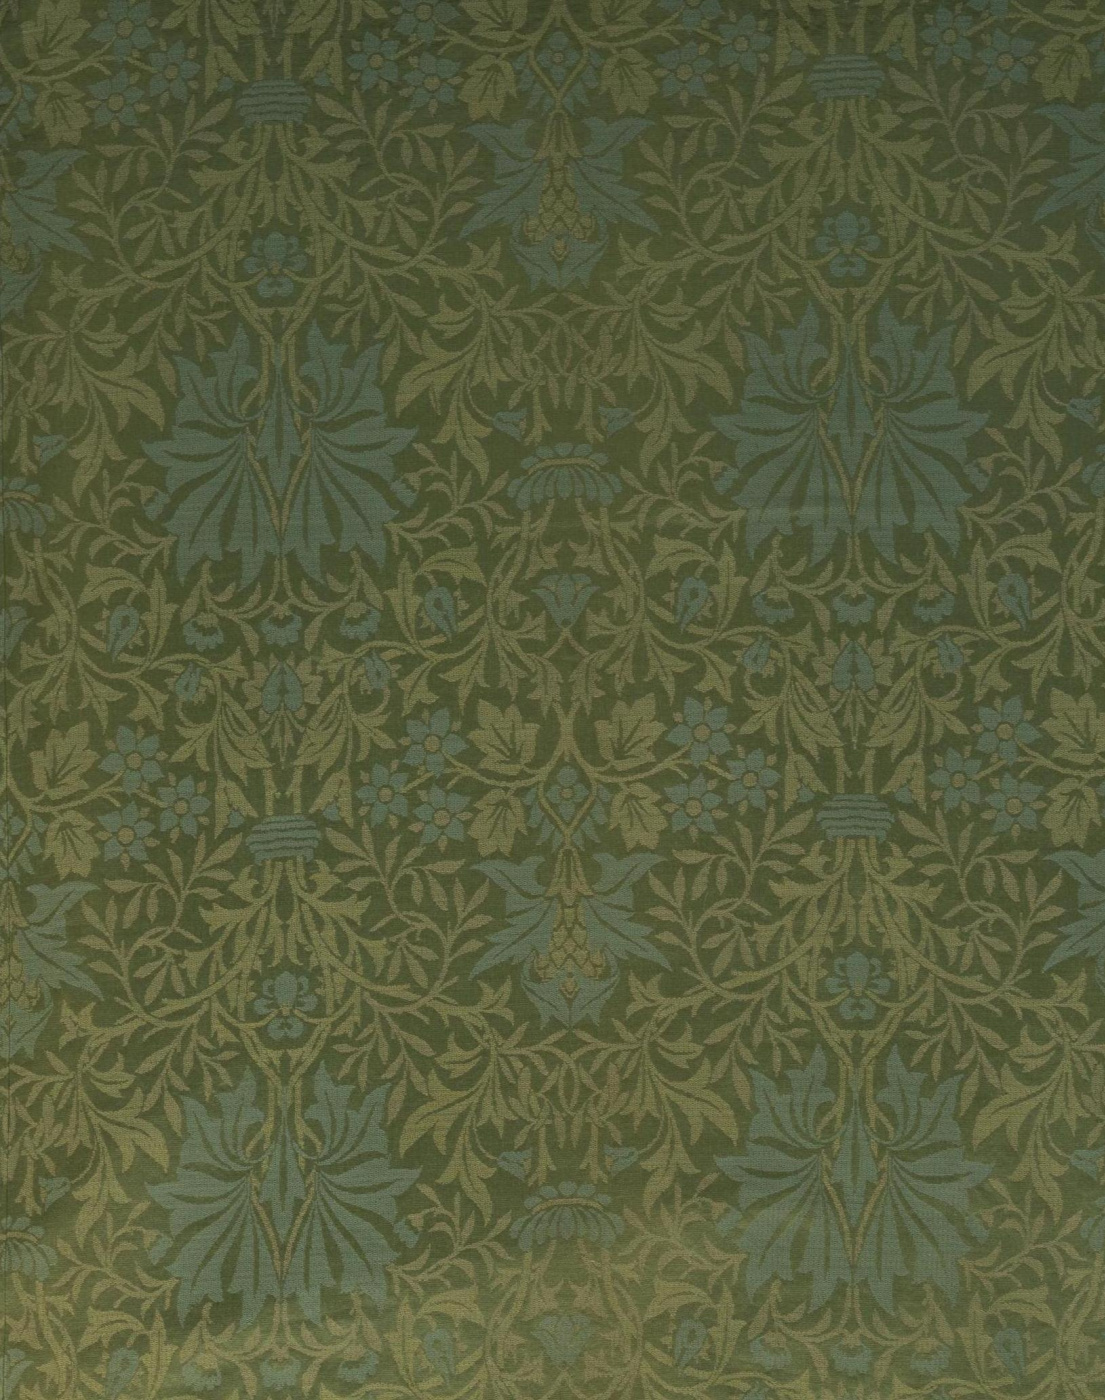 William Morris. In the flower garden